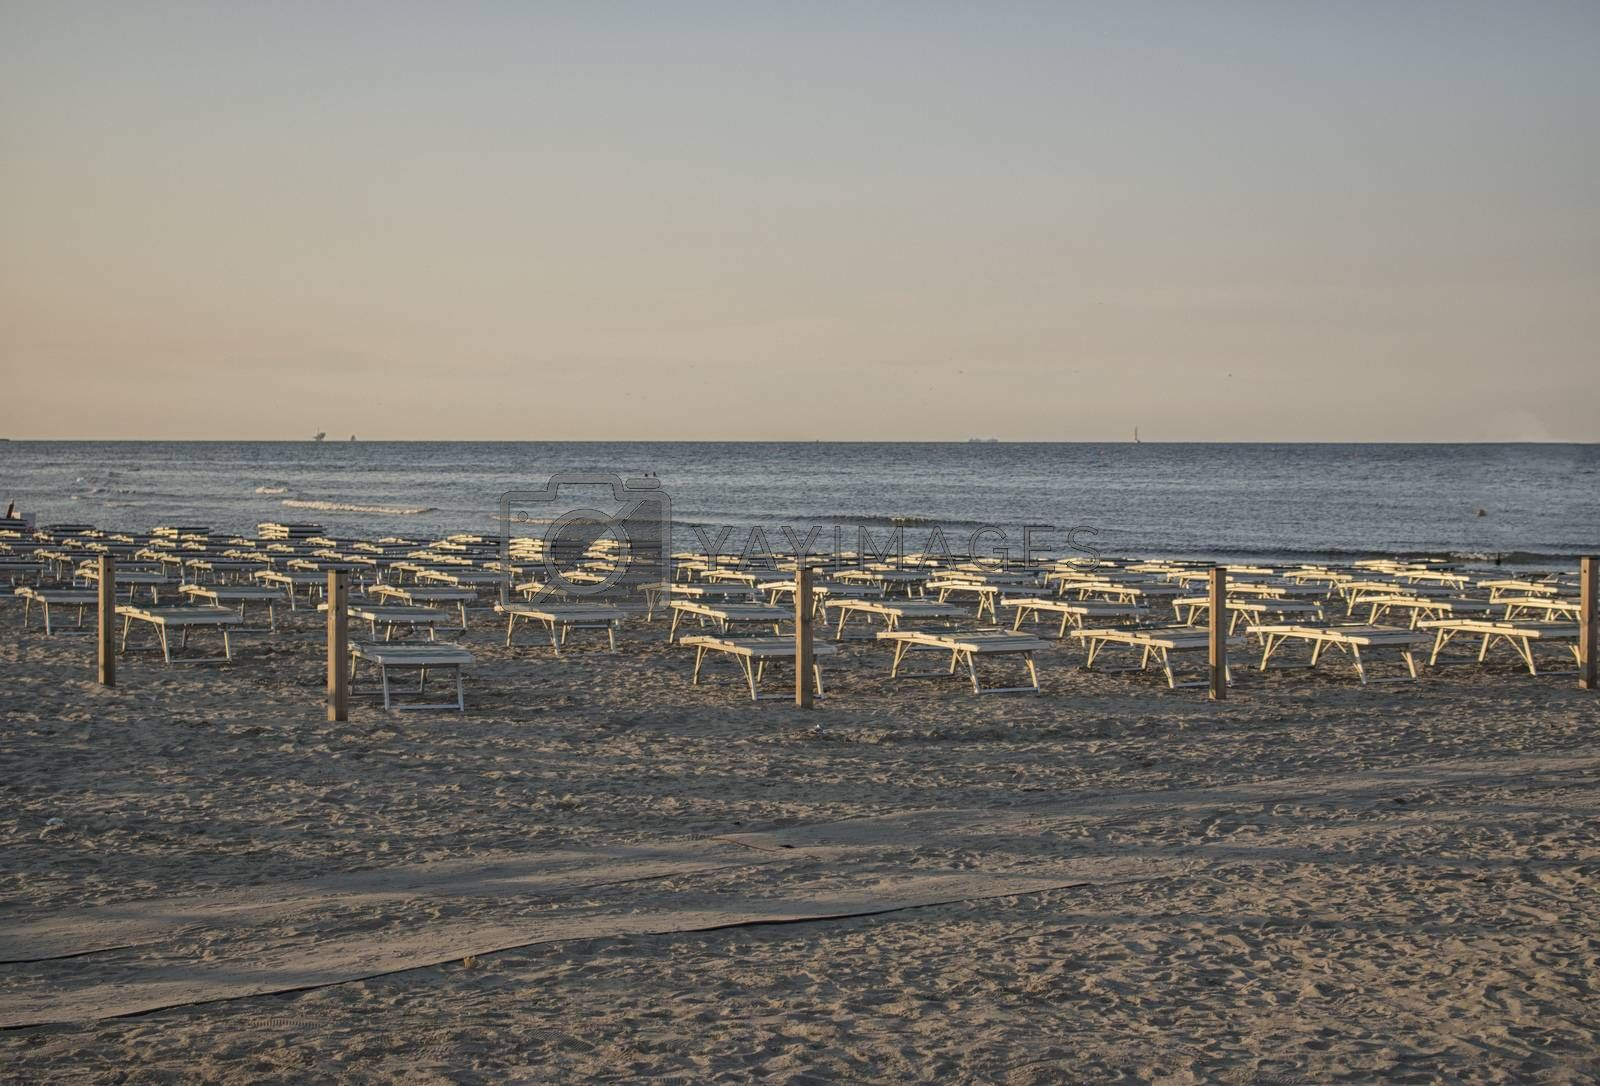 Deckchairs and umbrellas  on the seaside near the harbour channel of Cervia in Northern Italy on the Adriatic Sea